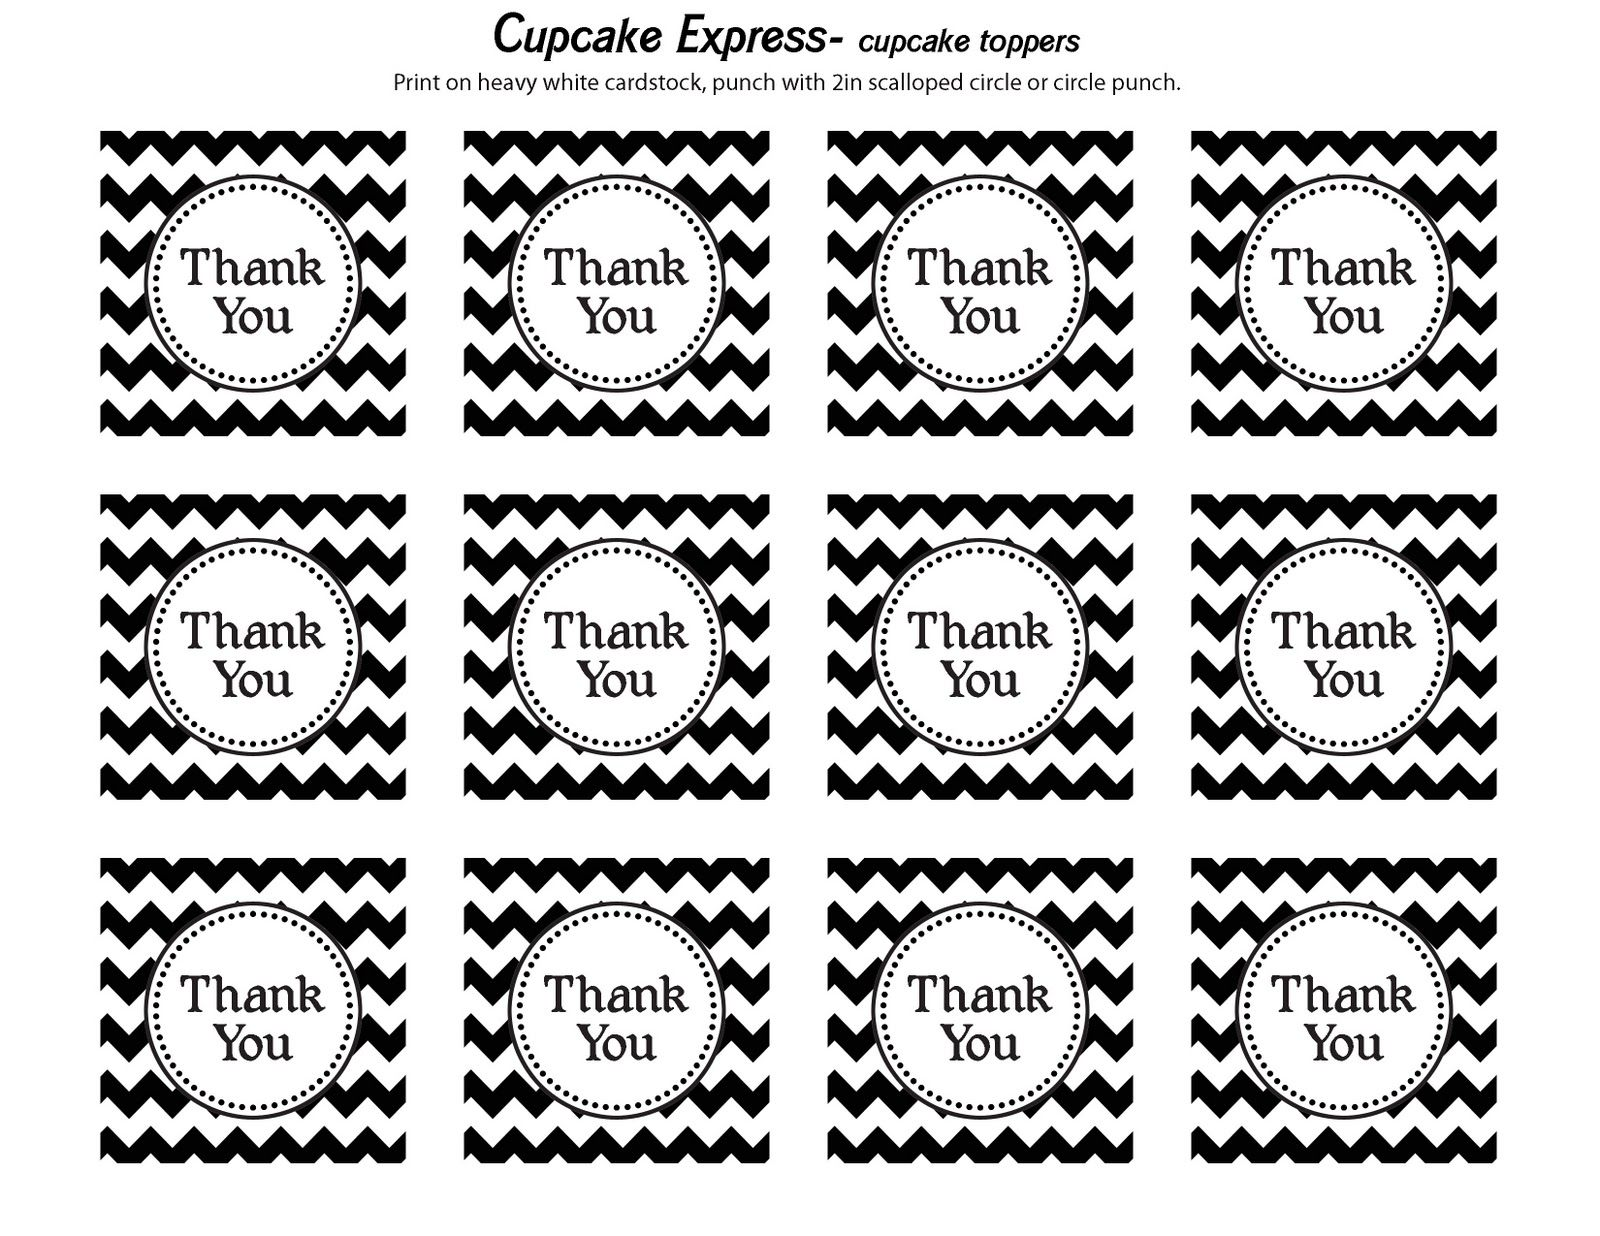 Cupcake Express Happy Monday Free Thank You Tags Printable Thank You Cards Thank You Tag Printable Thank You Printable